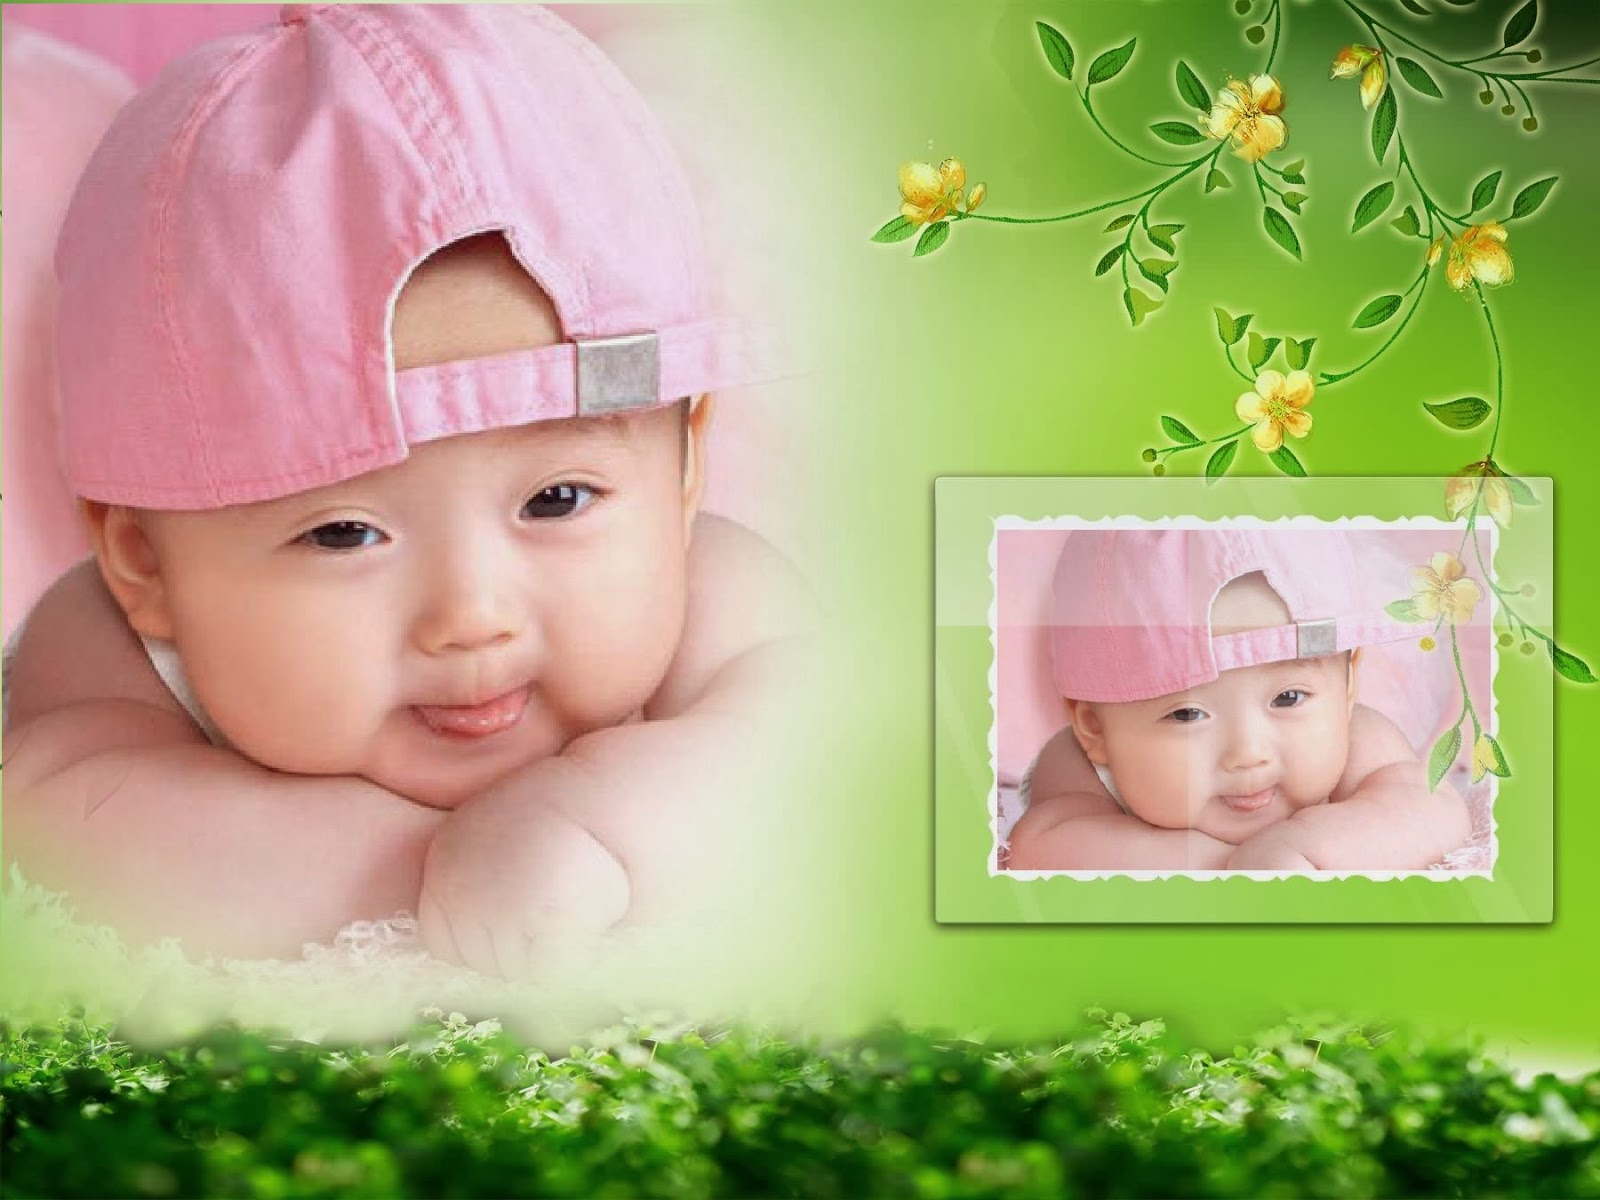 cute babies hd wallpapers download free high definition